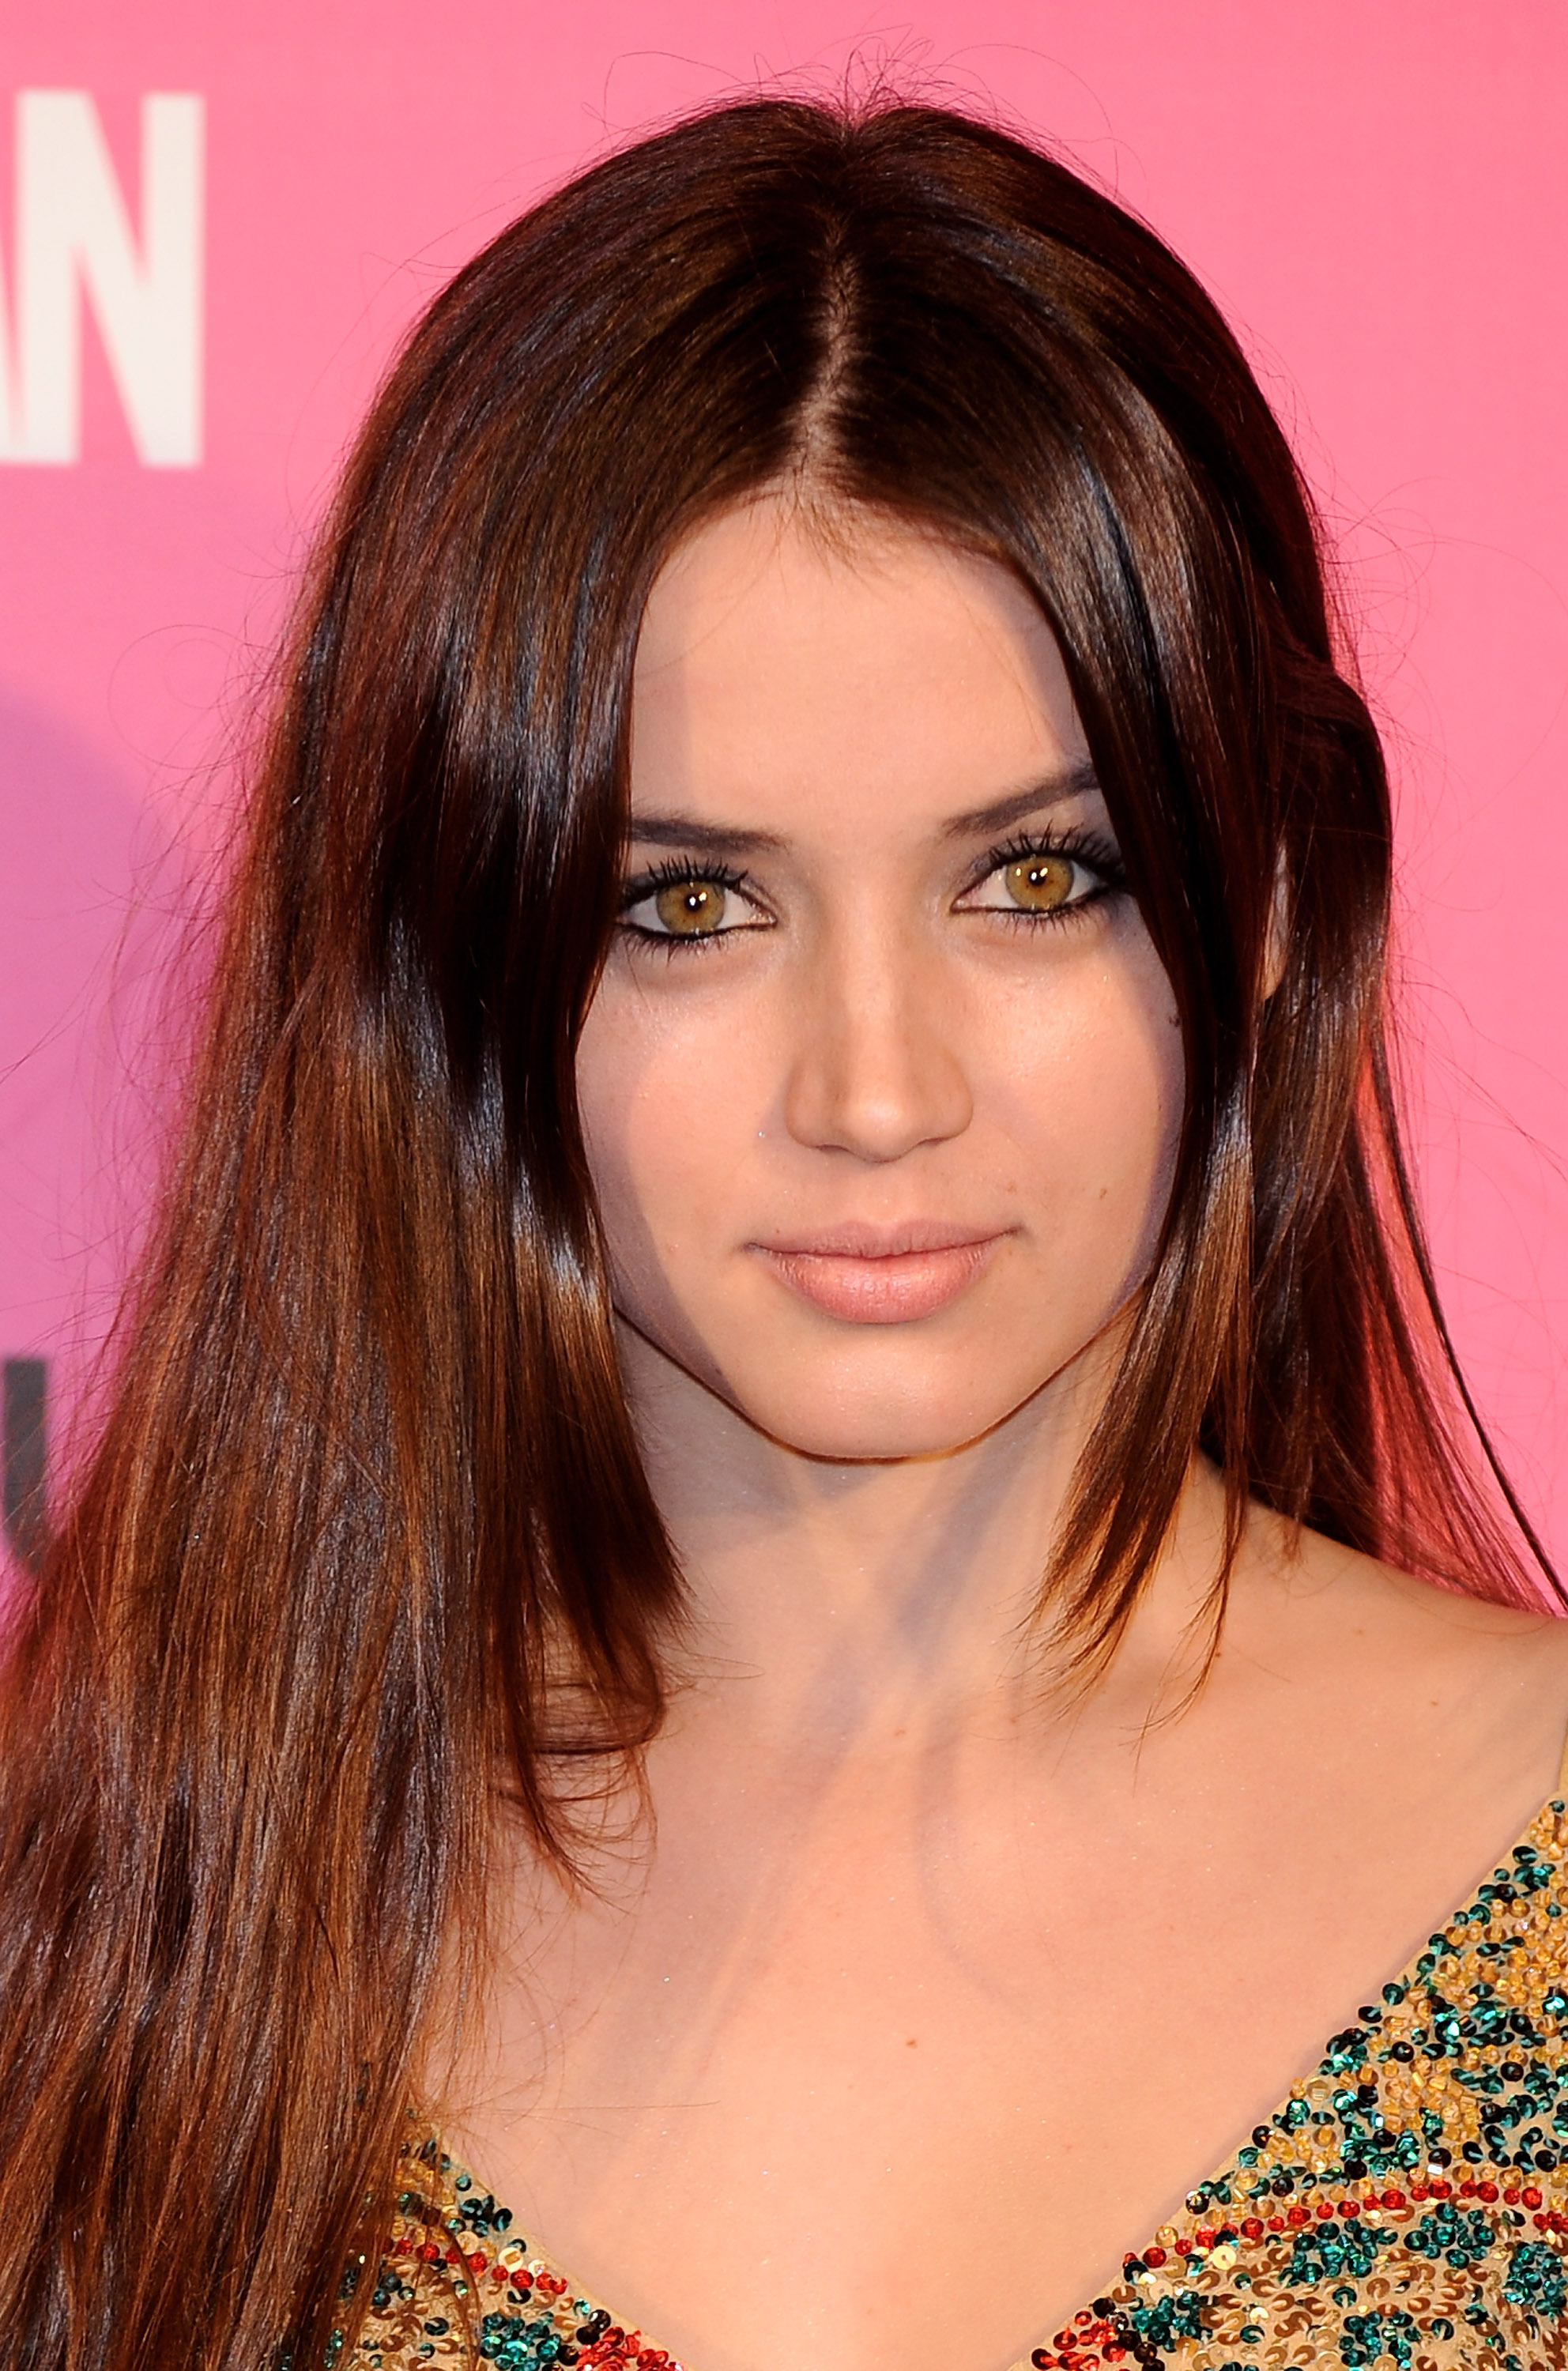 Ana De Armas Iphone Background